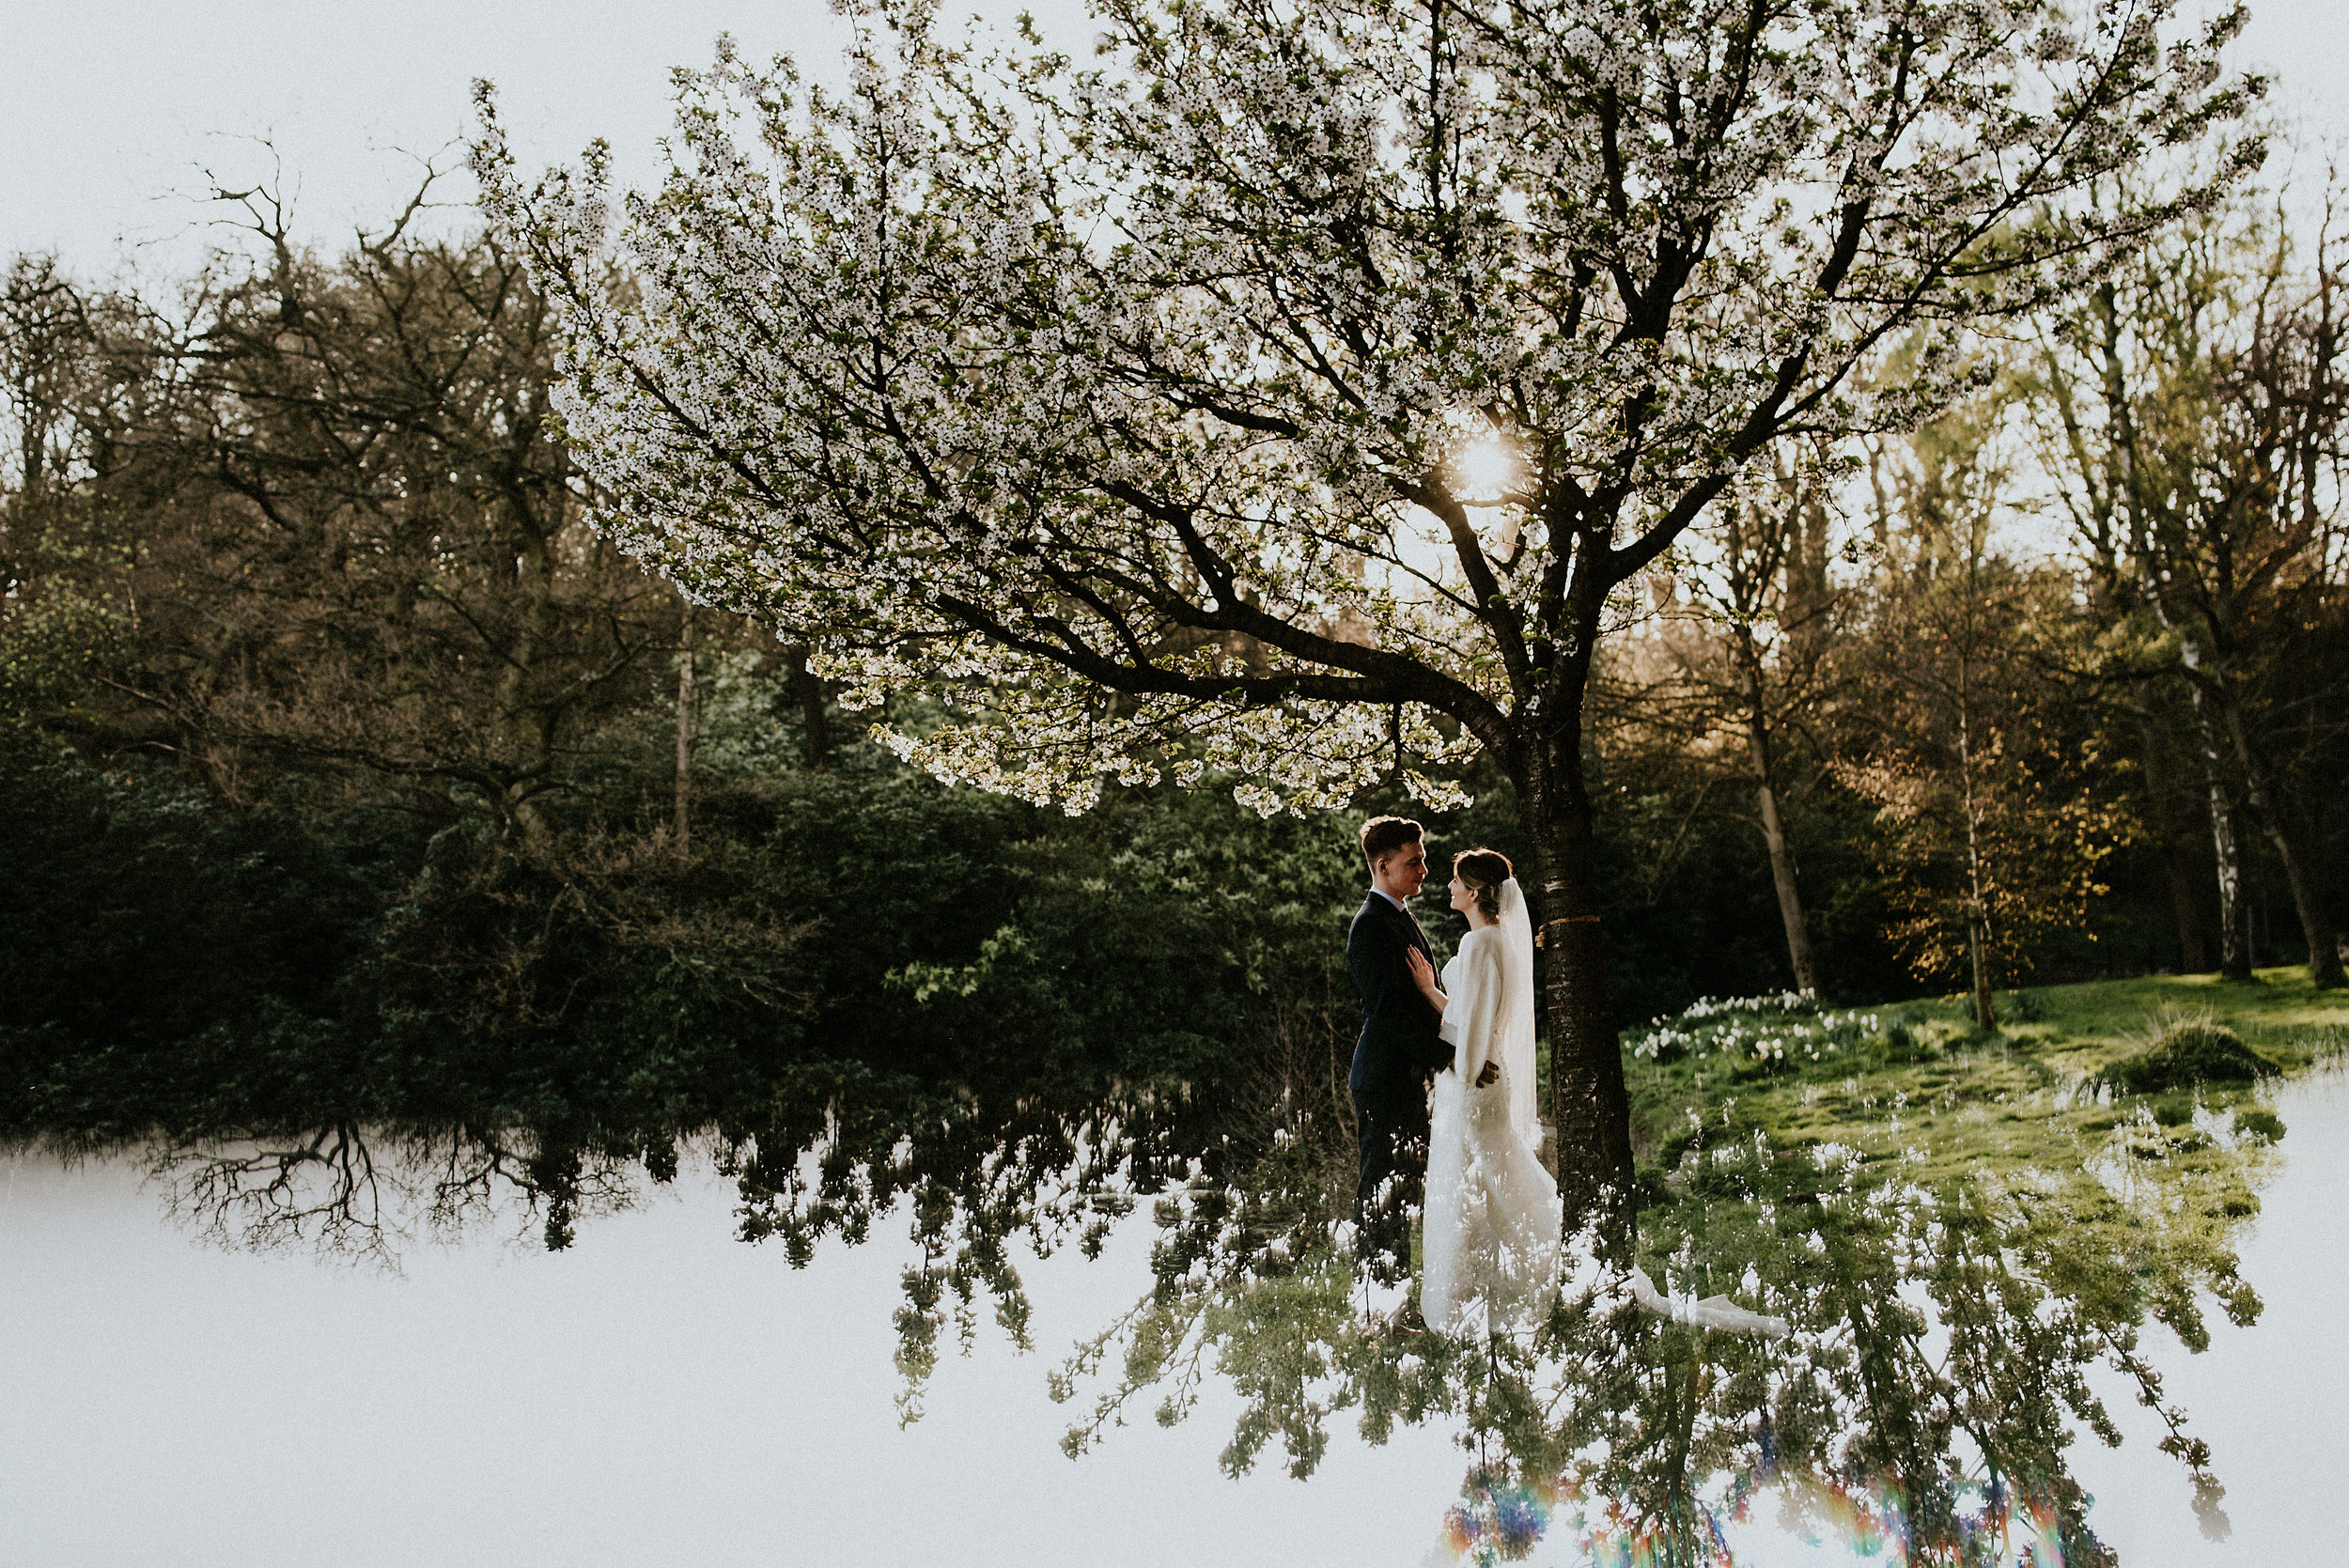 Spring has arrived in this Roundhay Park Mansion wedding filled with atmospheric romance & wild adventure.